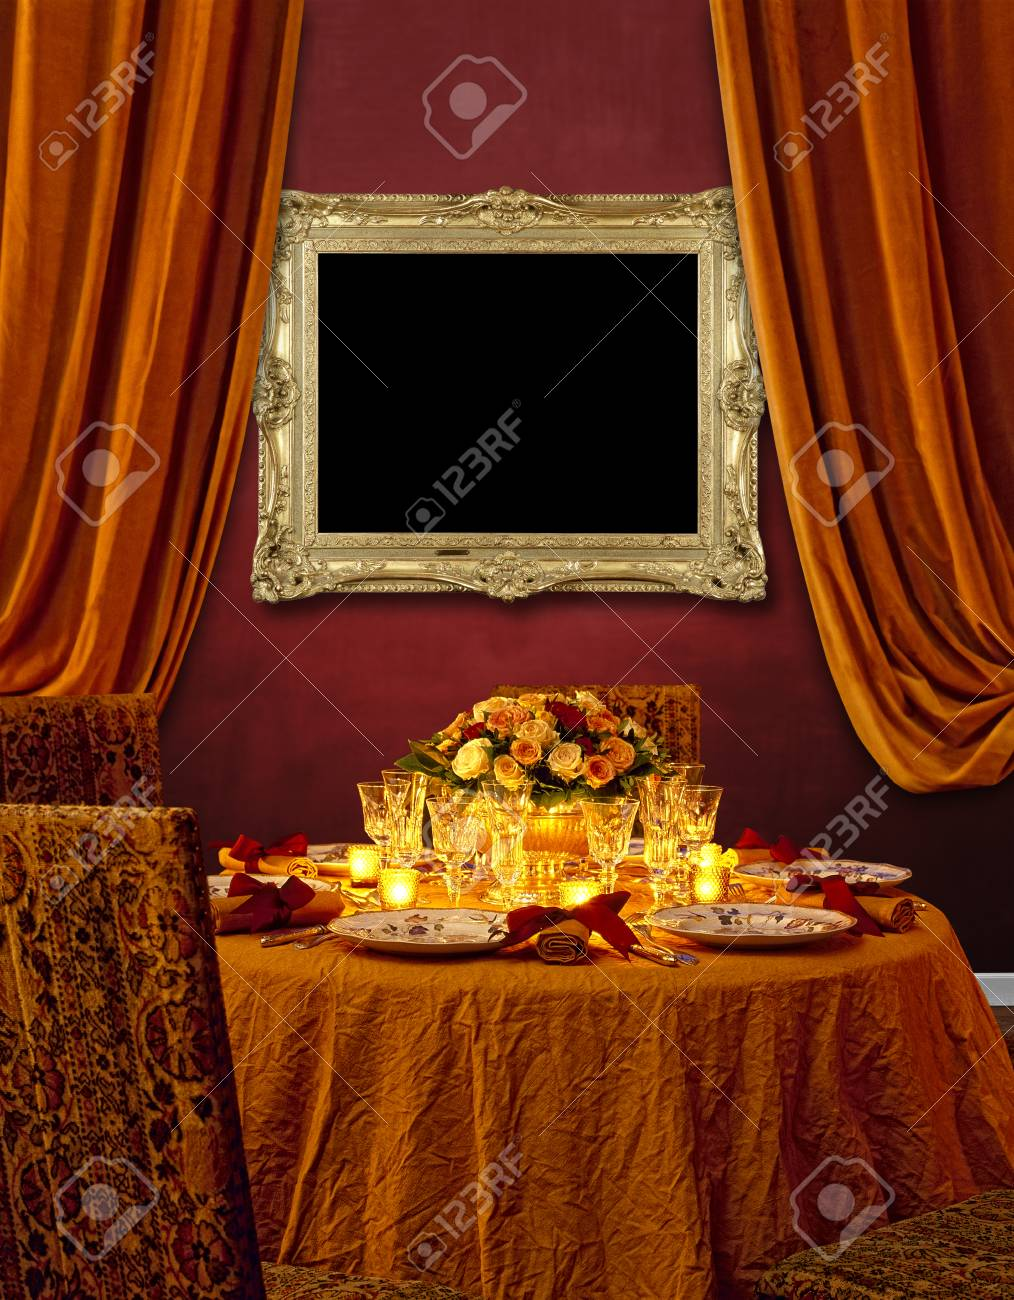 Luxurious Dining Table Against Red Textured Wall And Gold Frame Hanging Stock Photo